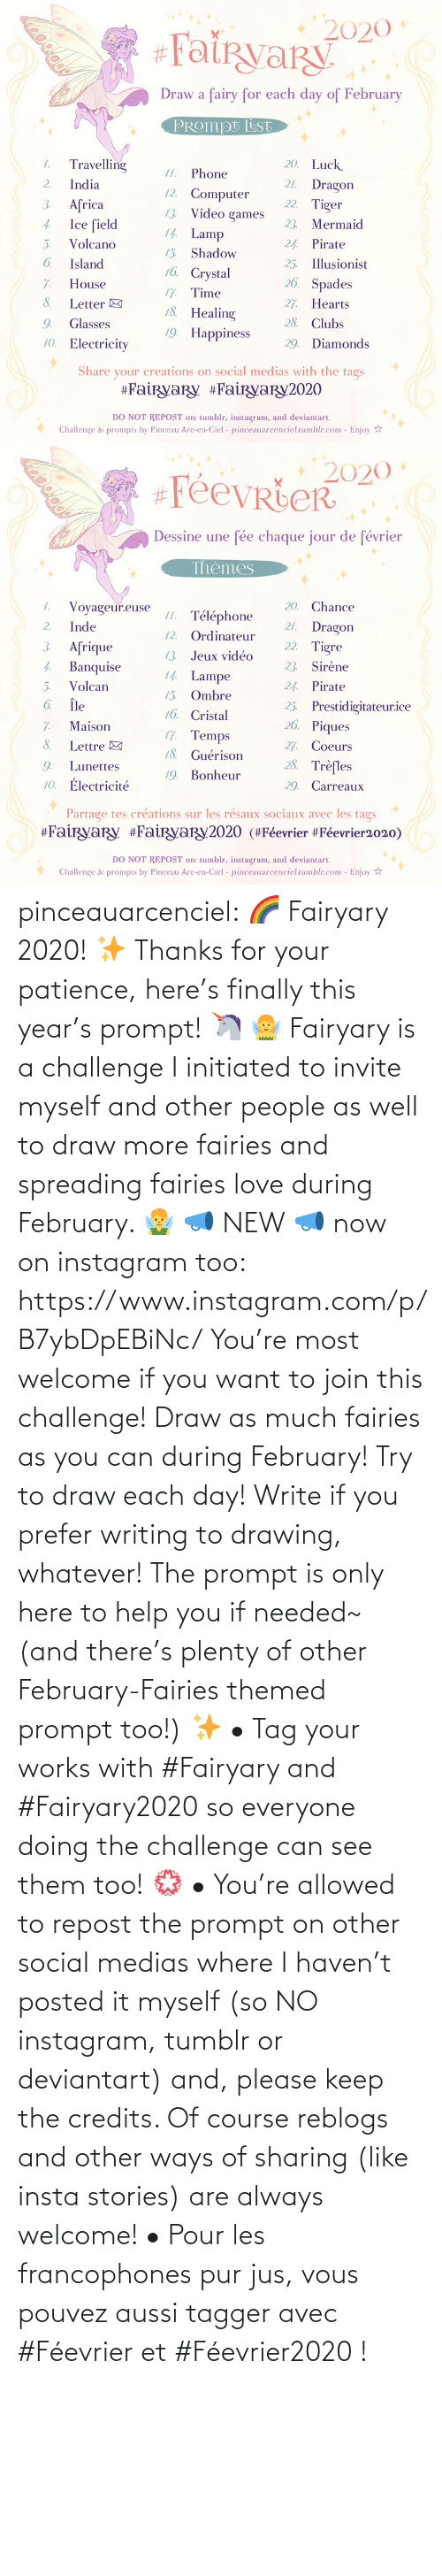 year: pinceauarcenciel: 🌈 Fairyary 2020! ✨ Thanks for your patience, here's finally this year's prompt! 🦄 🧚‍♀️ Fairyary is a challenge I initiated to invite myself and other people as well to draw more fairies and spreading fairies love during February. 🧚‍♂️ 📣 NEW 📣 now on instagram too: https://www.instagram.com/p/B7ybDpEBiNc/ You're most welcome if you want to join this challenge! Draw as much fairies as you can during February! Try to draw each day! Write if you prefer writing to drawing, whatever! The prompt is only here to help you if needed~ (and there's plenty of other February-Fairies themed prompt too!) ✨ • Tag your works with #Fairyary and #Fairyary2020 so everyone doing the challenge can see them too! 💮 • You're allowed to repost the prompt on other social medias where I haven't posted it myself (so NO instagram, tumblr or deviantart) and, please keep the credits. Of course reblogs and other ways of sharing (like insta stories) are always welcome!